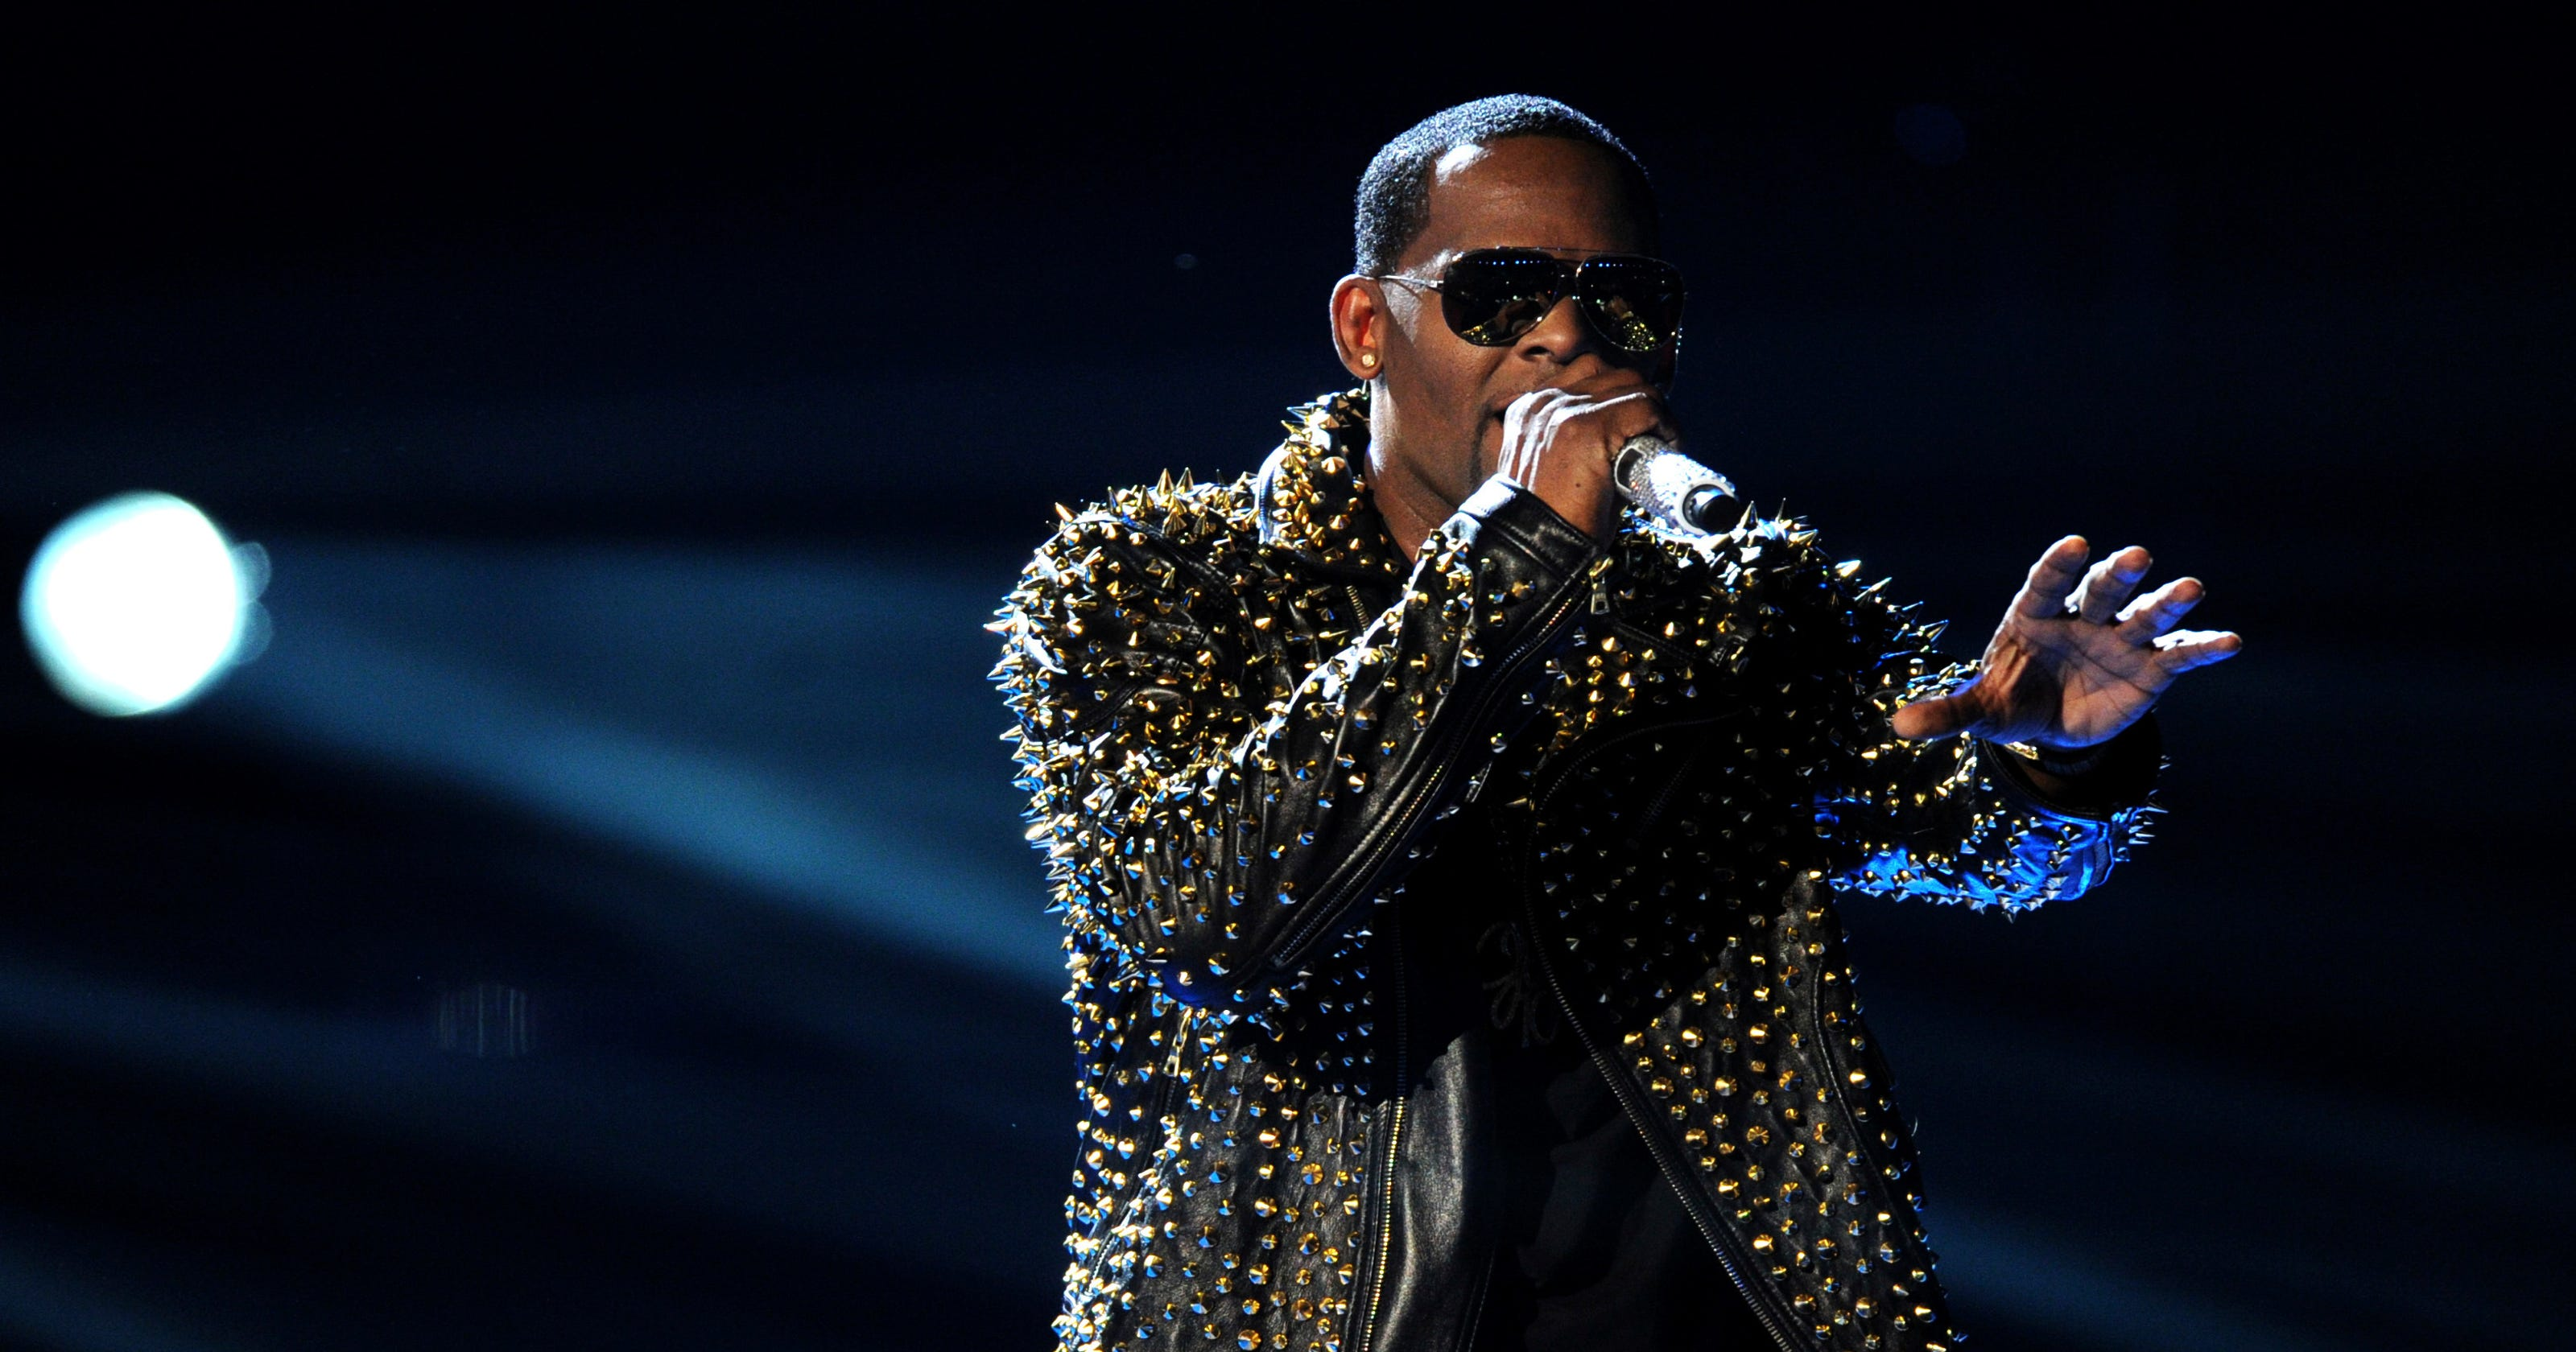 R  Kelly's sales and streams spike after 'Surviving R  Kelly